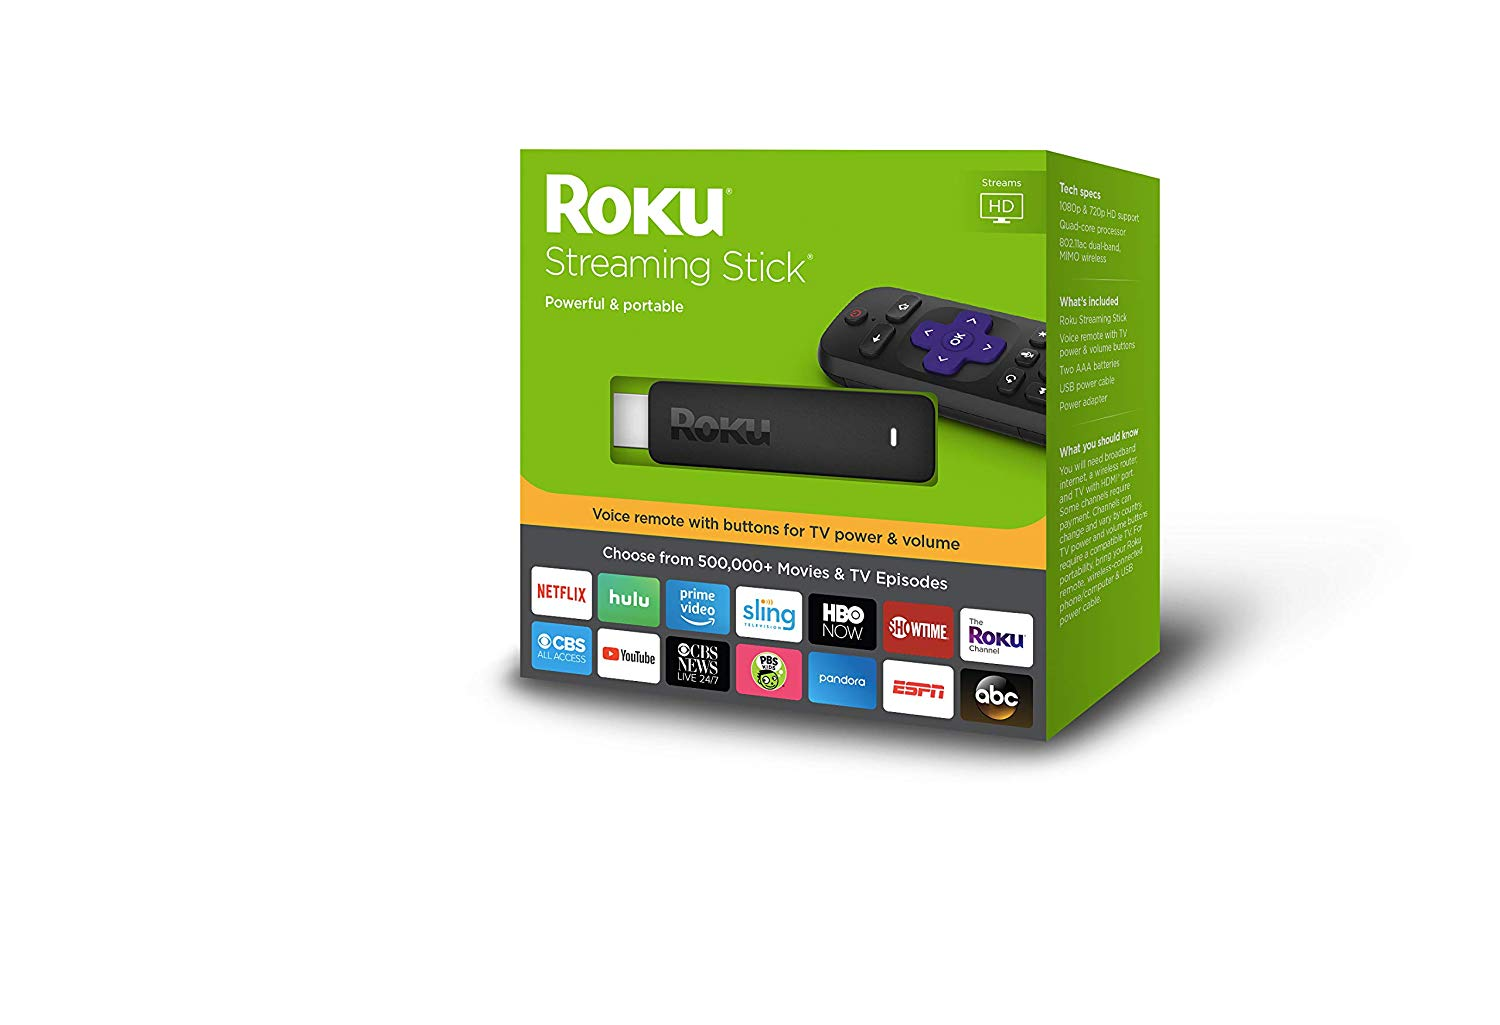 Roku Streaming Stick for TV Power as well as Volume - Amazon Prime Day